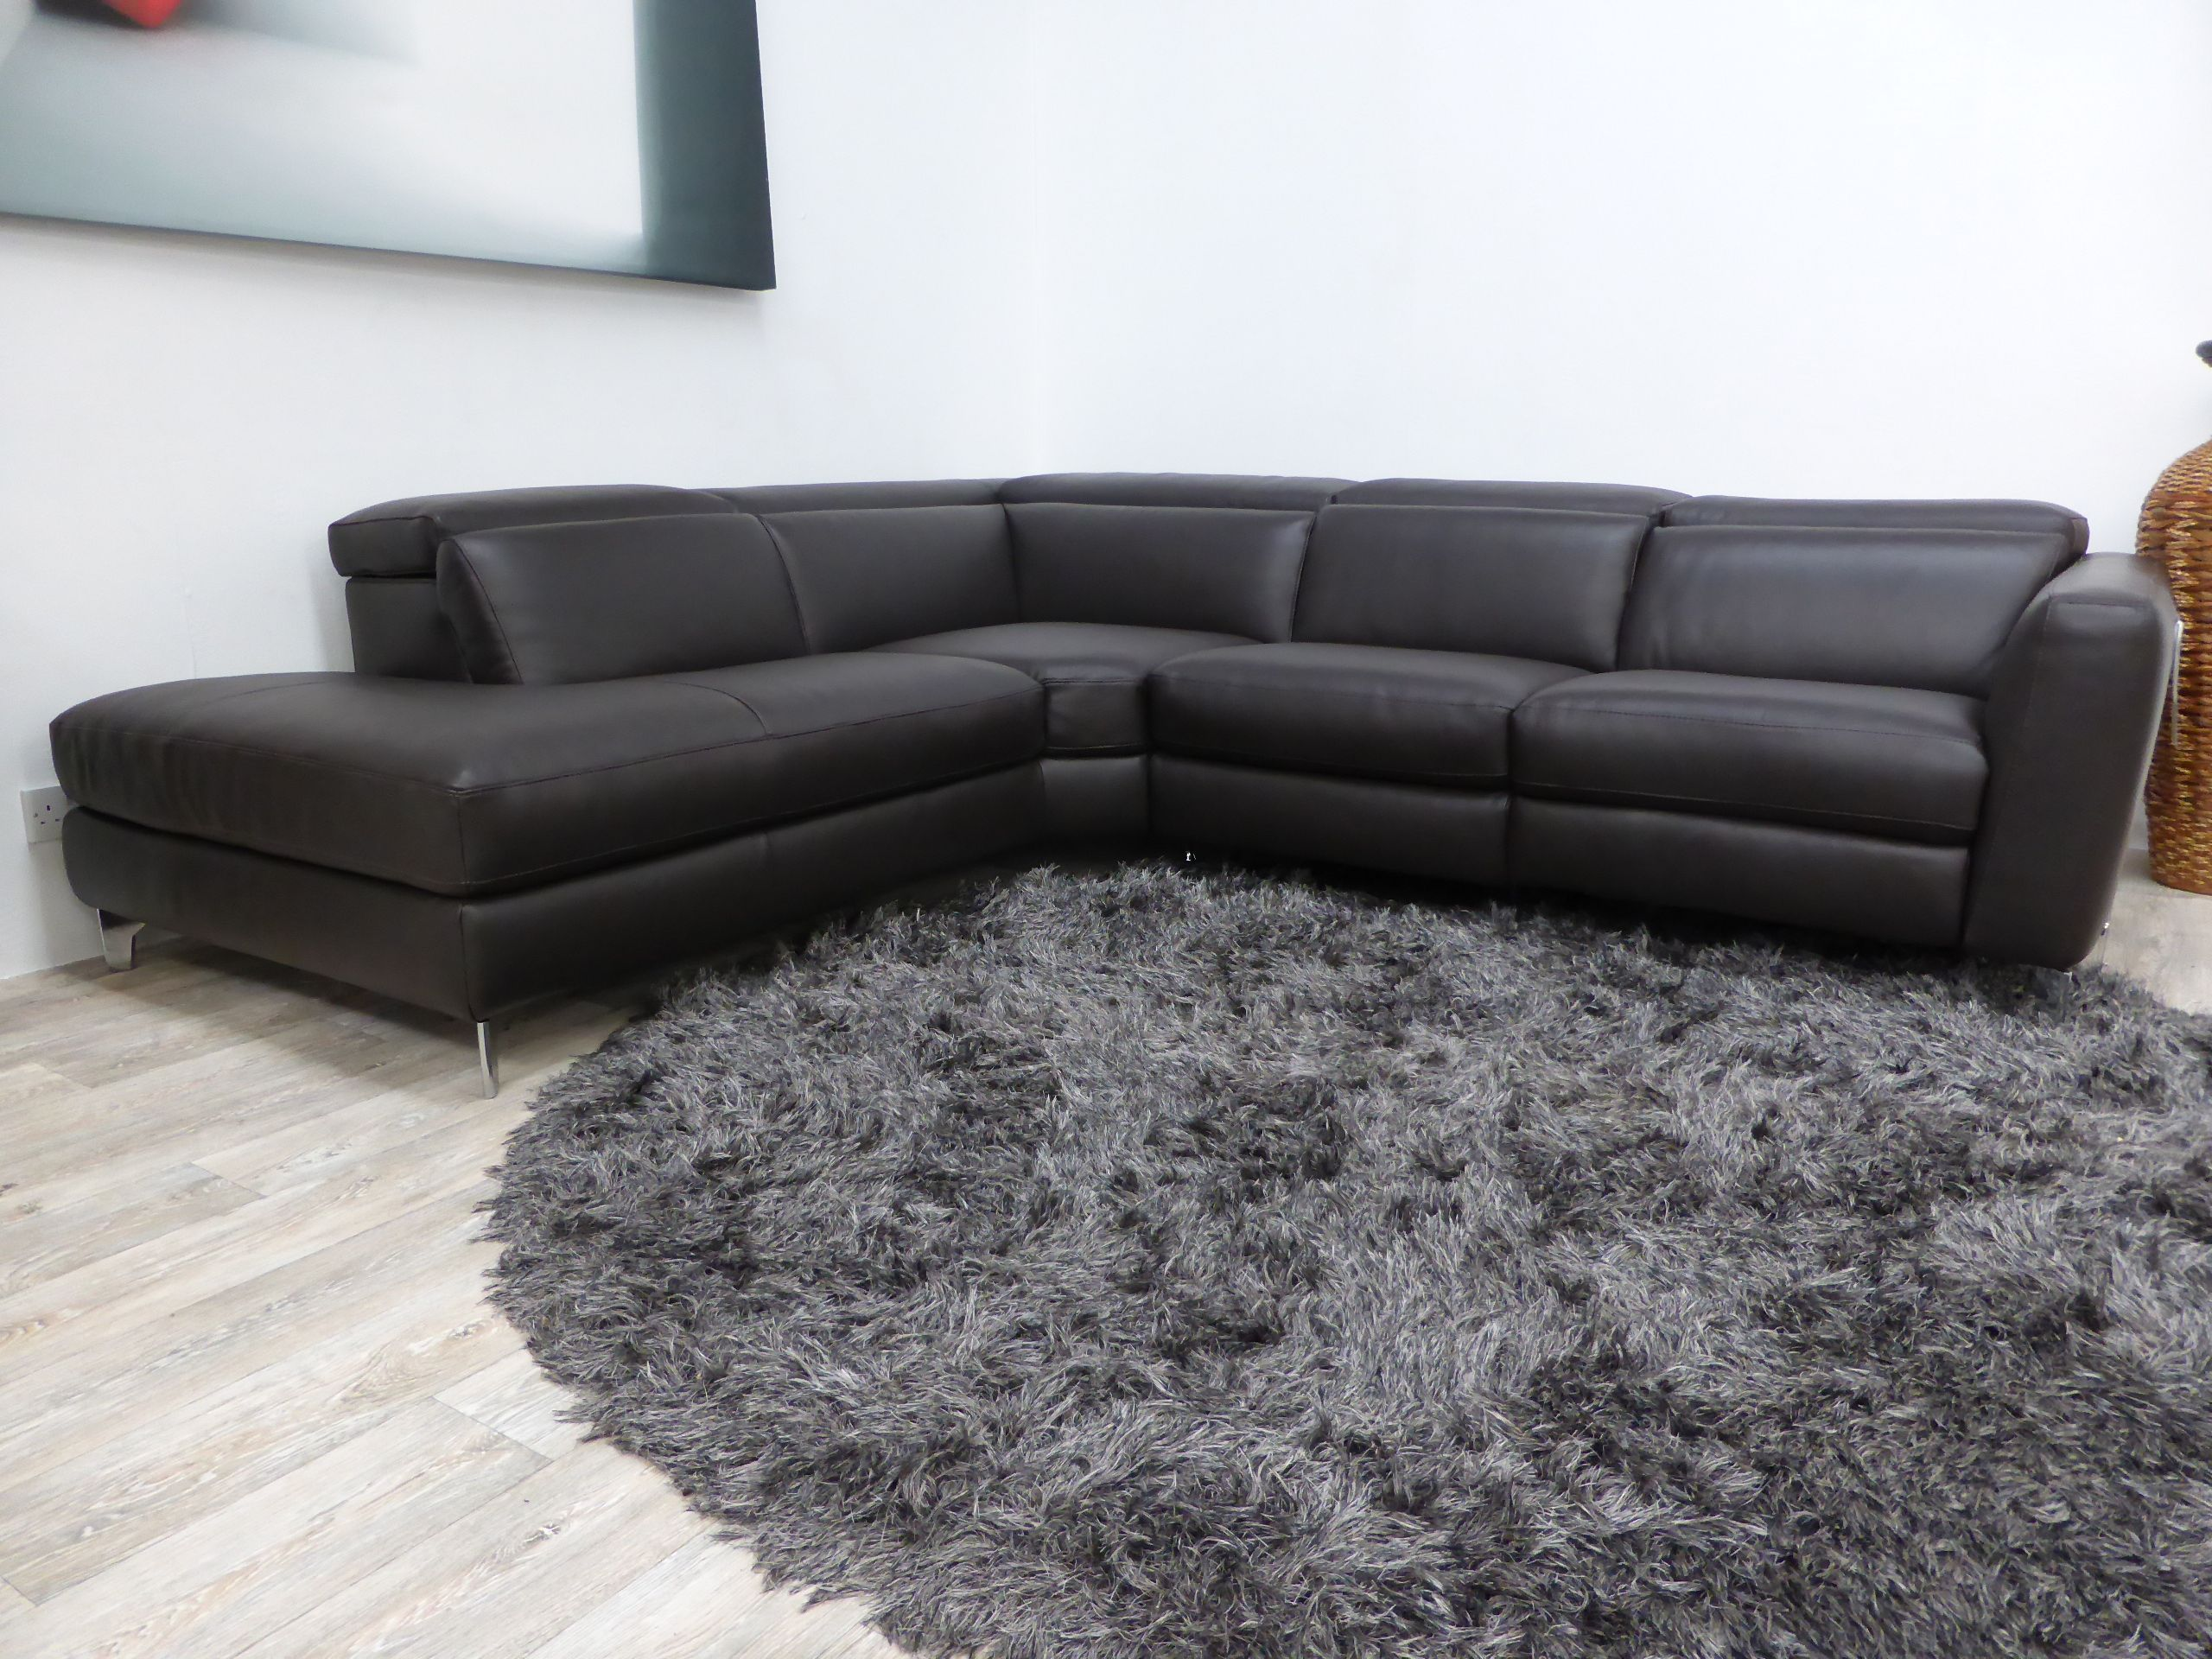 natuzzi italia volo sofa natuzzi italia philadelphia 321 south street 215 515 3398. Black Bedroom Furniture Sets. Home Design Ideas